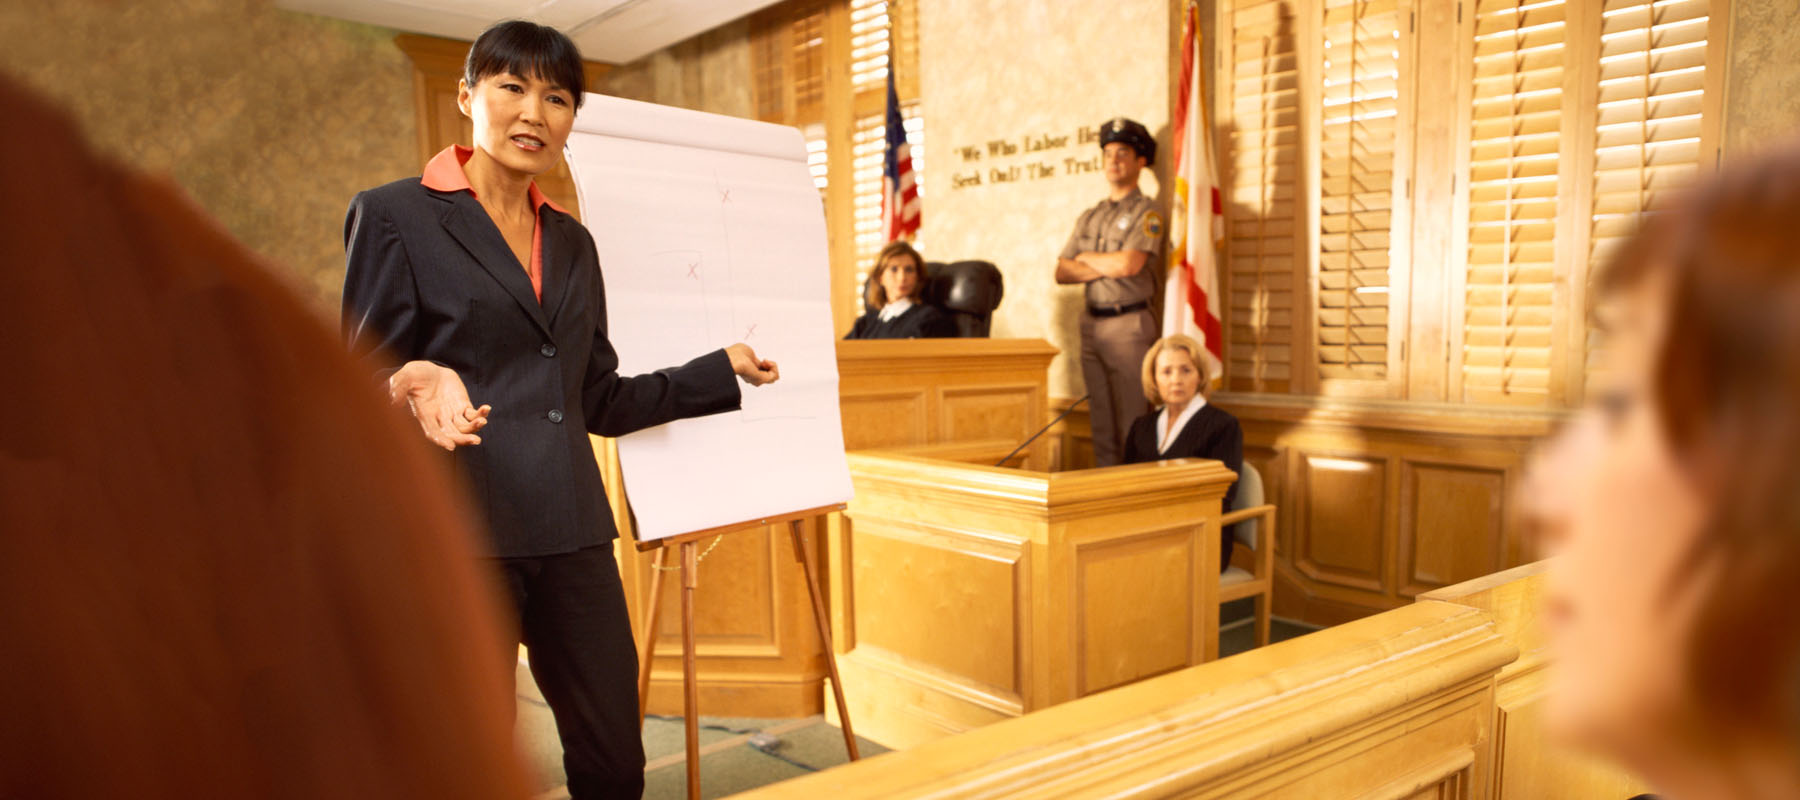 female in a suit talks to a jury in a court room